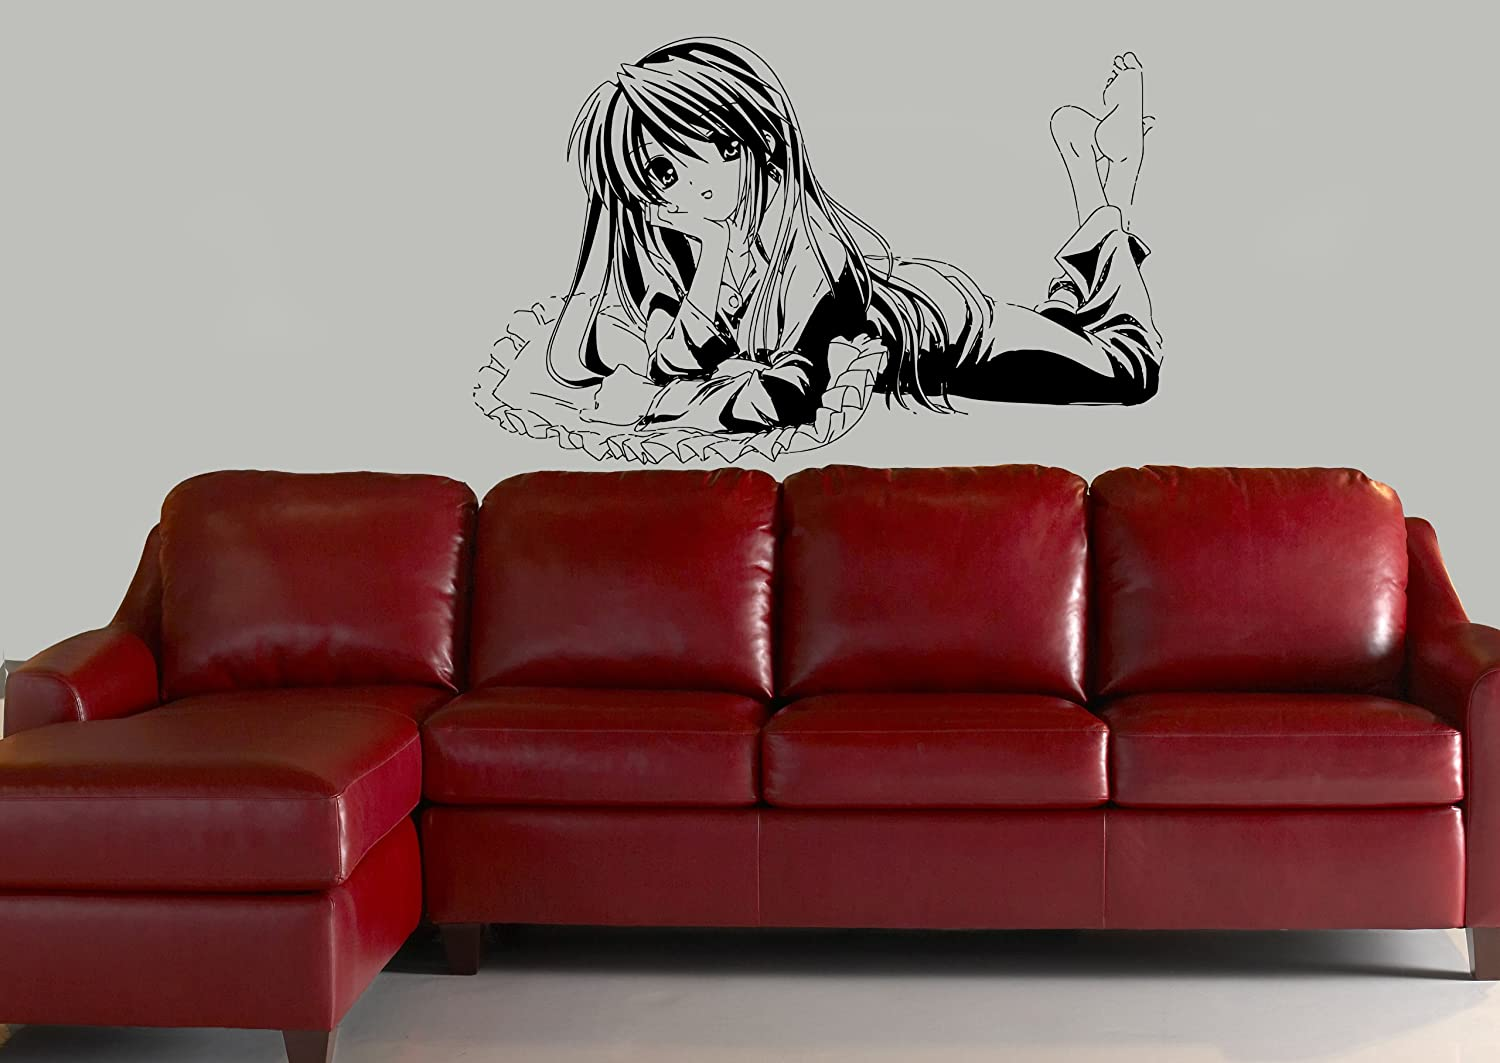 amazon com wall mural vinyl sticker decal anime manga pretty girl amazon com wall mural vinyl sticker decal anime manga pretty girl on pillow d1650 home kitchen